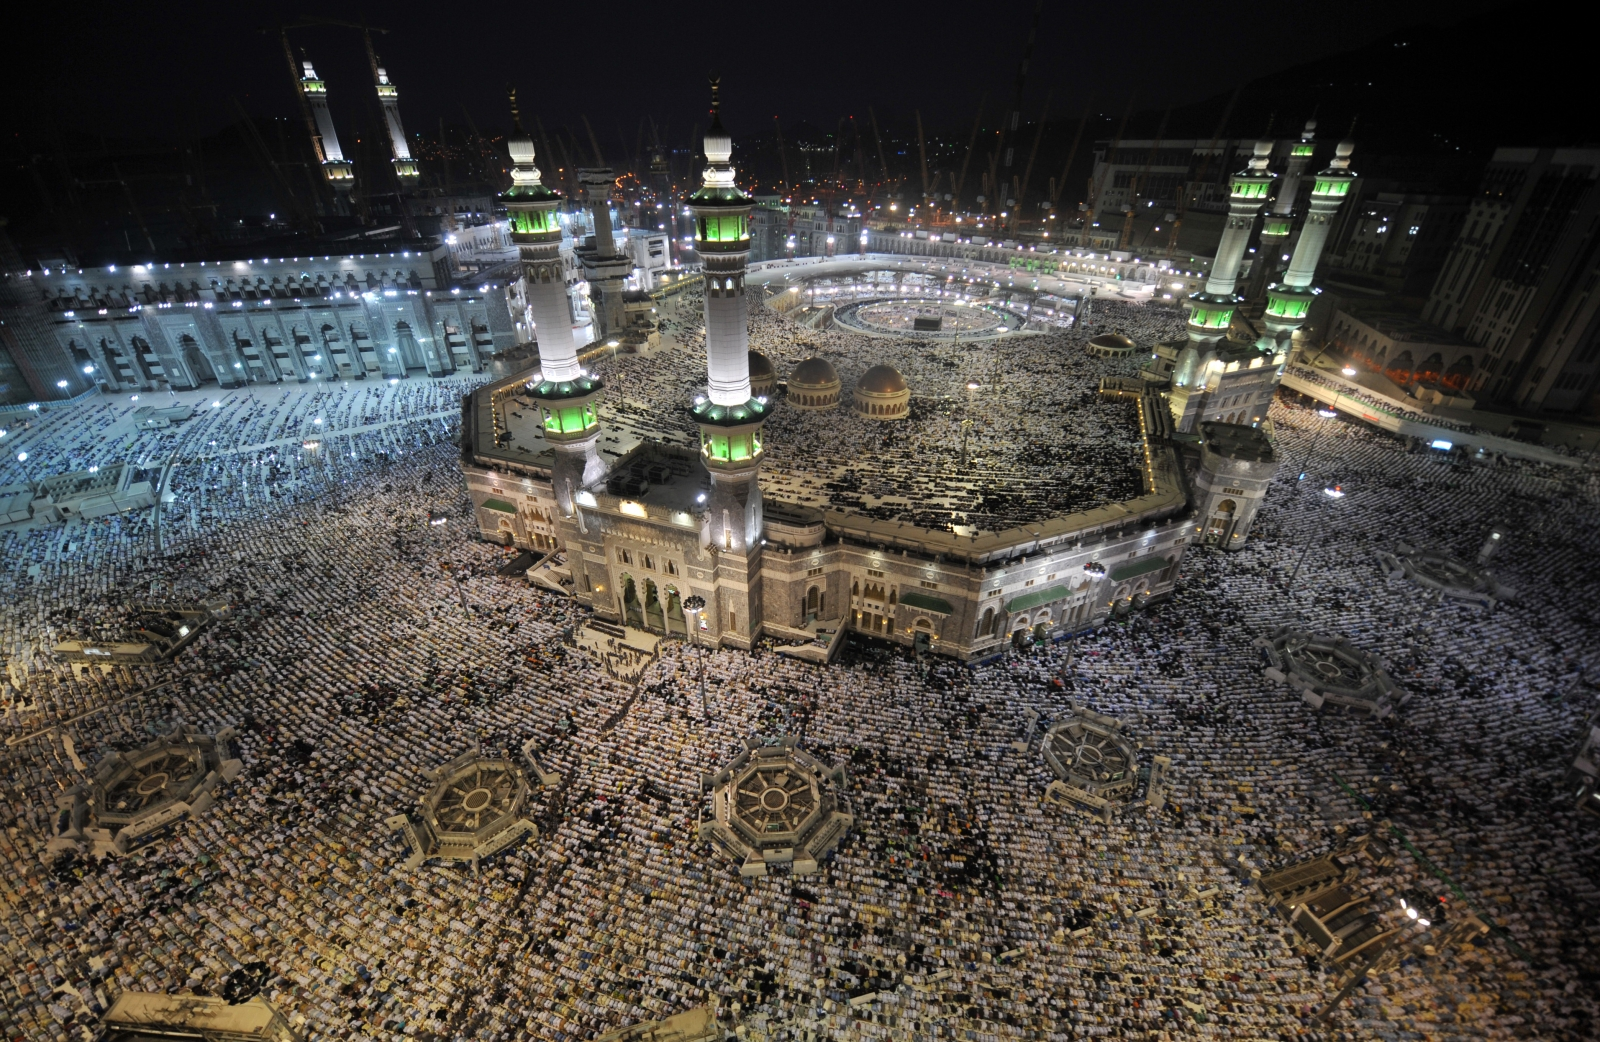 an overview of the hajj a pilgrimage to the grand mosque of mecca Hajj is the fifth pillar of islam which involves men and women making a pilgrimage to mecca, saudi arabia muslims are supposed to make the journey at least once in their lifetime.